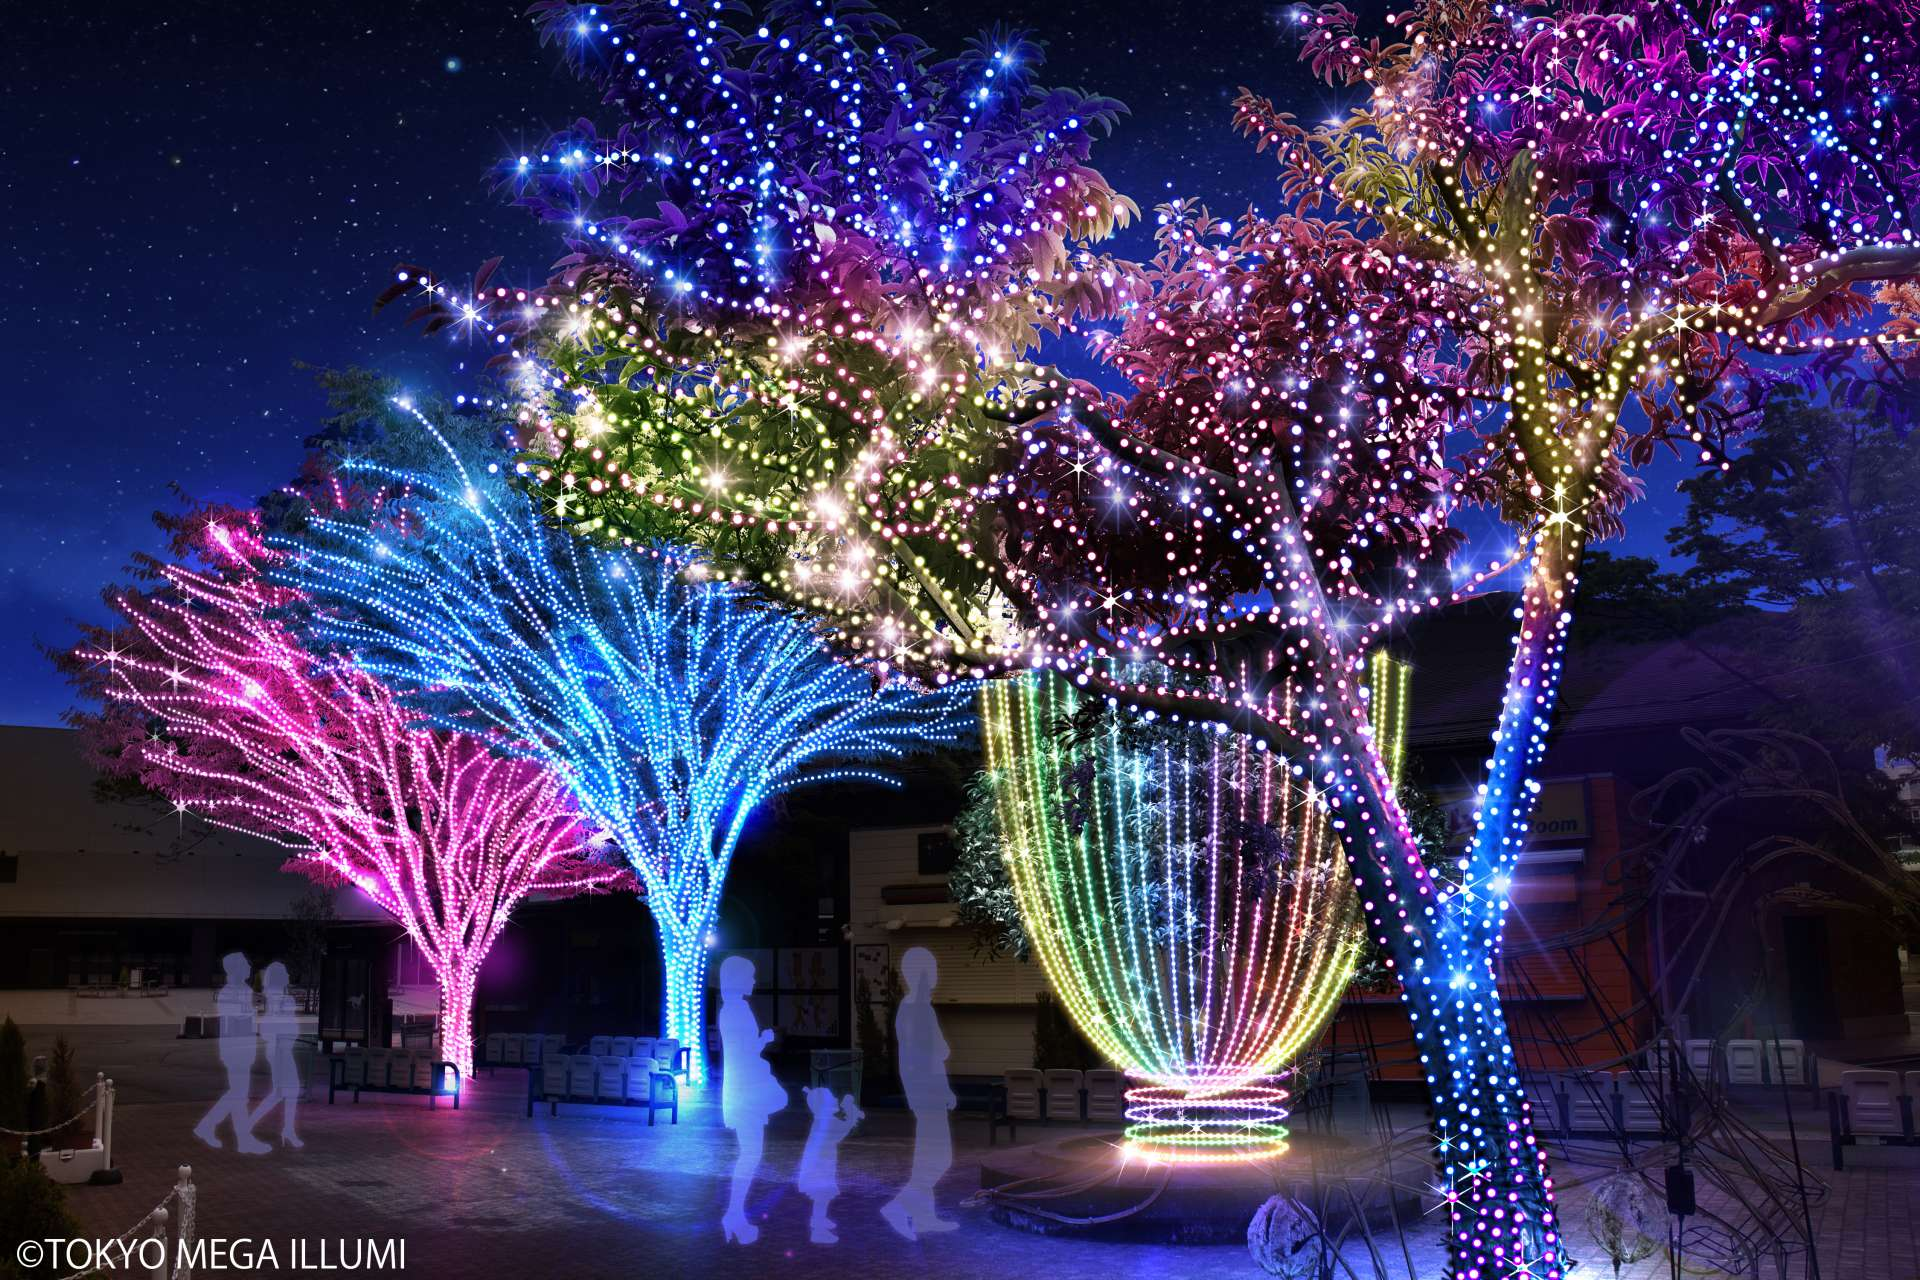 Whether as a couple, parent and child, or friends, enjoy walking about the beautiful illuminations!